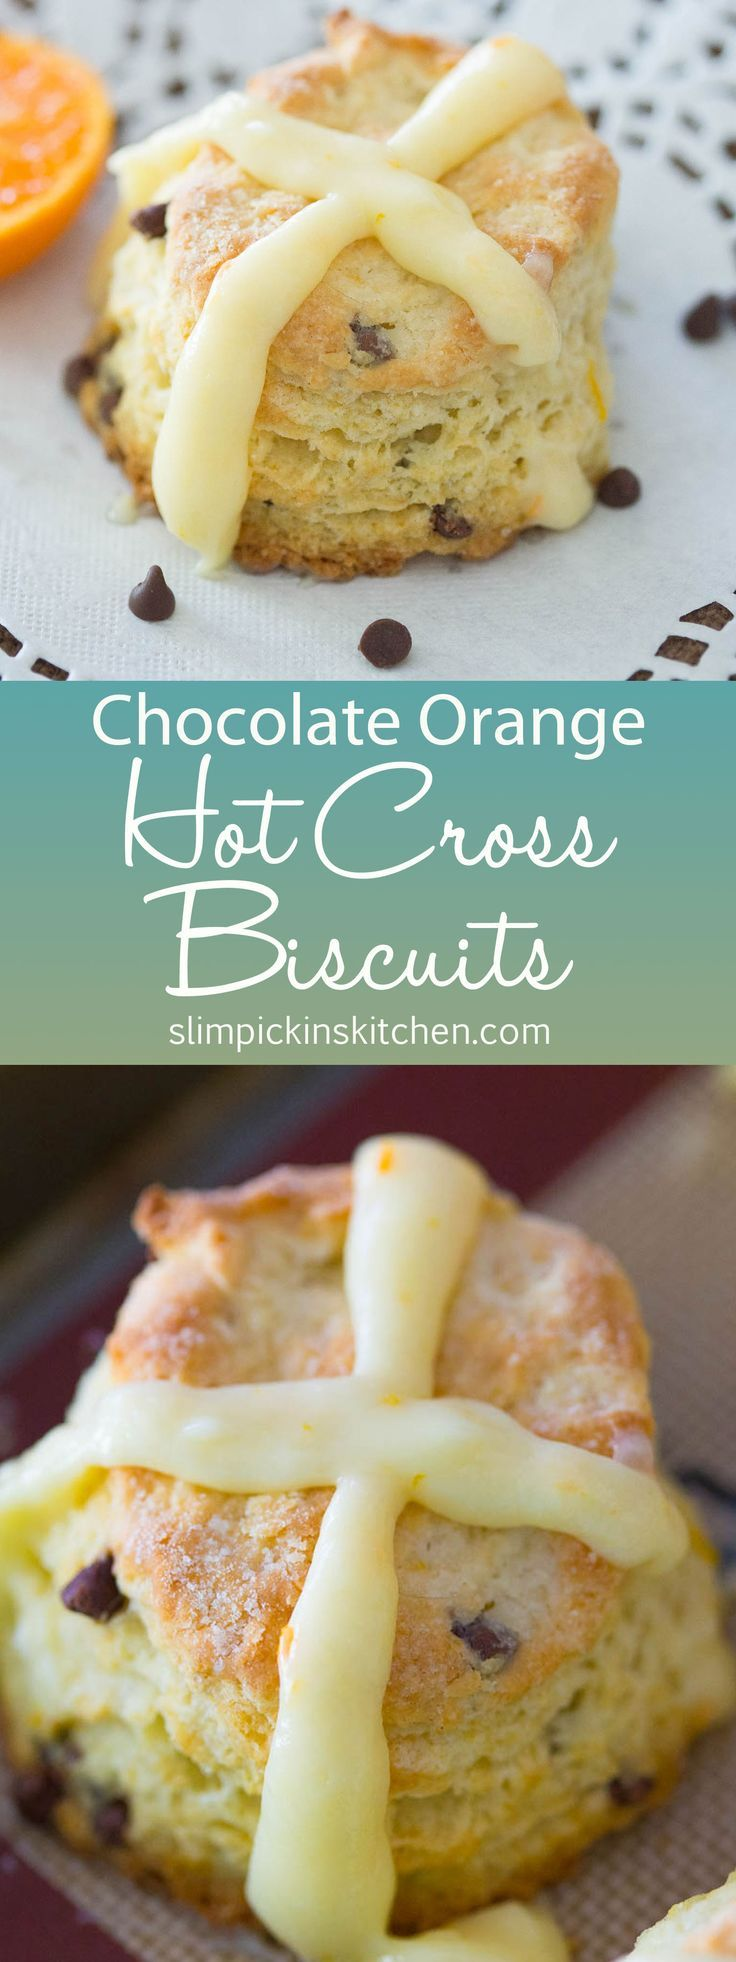 Chocolate Orange Hot Cross Biscuits are a southern take on the classic hot cross buns served on Good Friday. Made without yeast and easily pulled together in ten minutes or less, these chocolate orange biscuits will become a staple for Easter brunch!